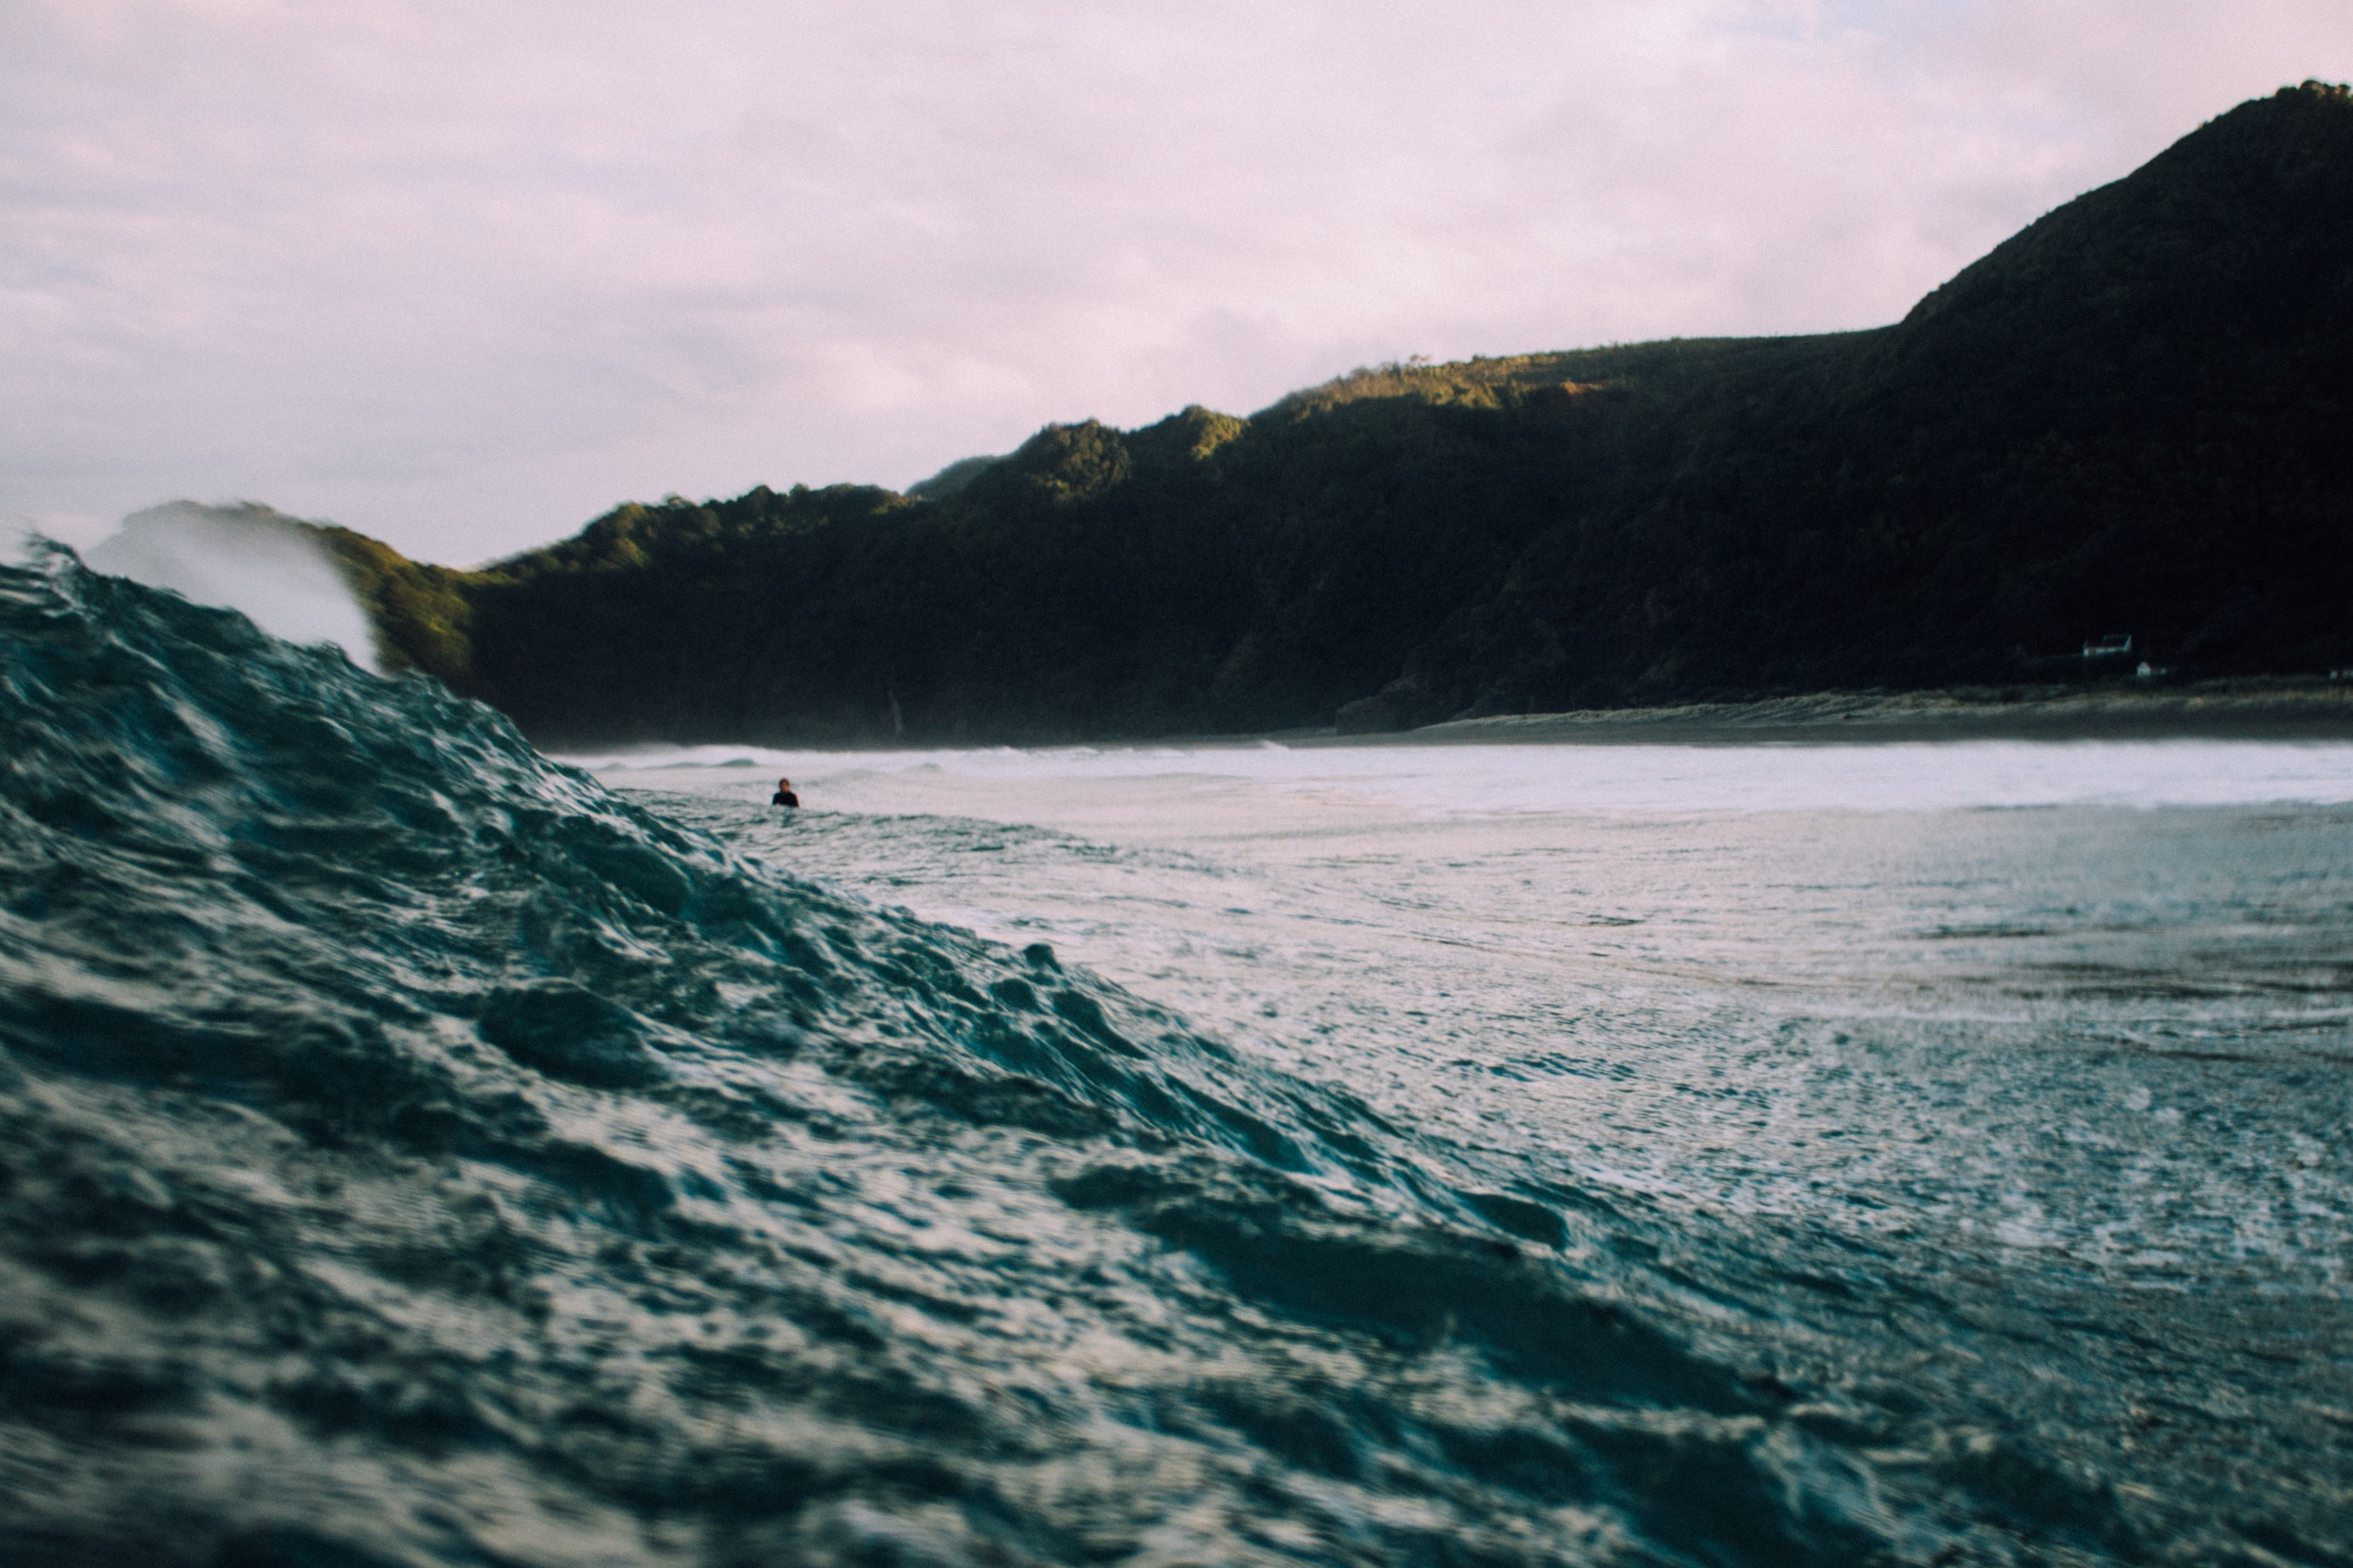 A shot of a rolling wave with a surfer in the distance, and the mountains in the background at Piha